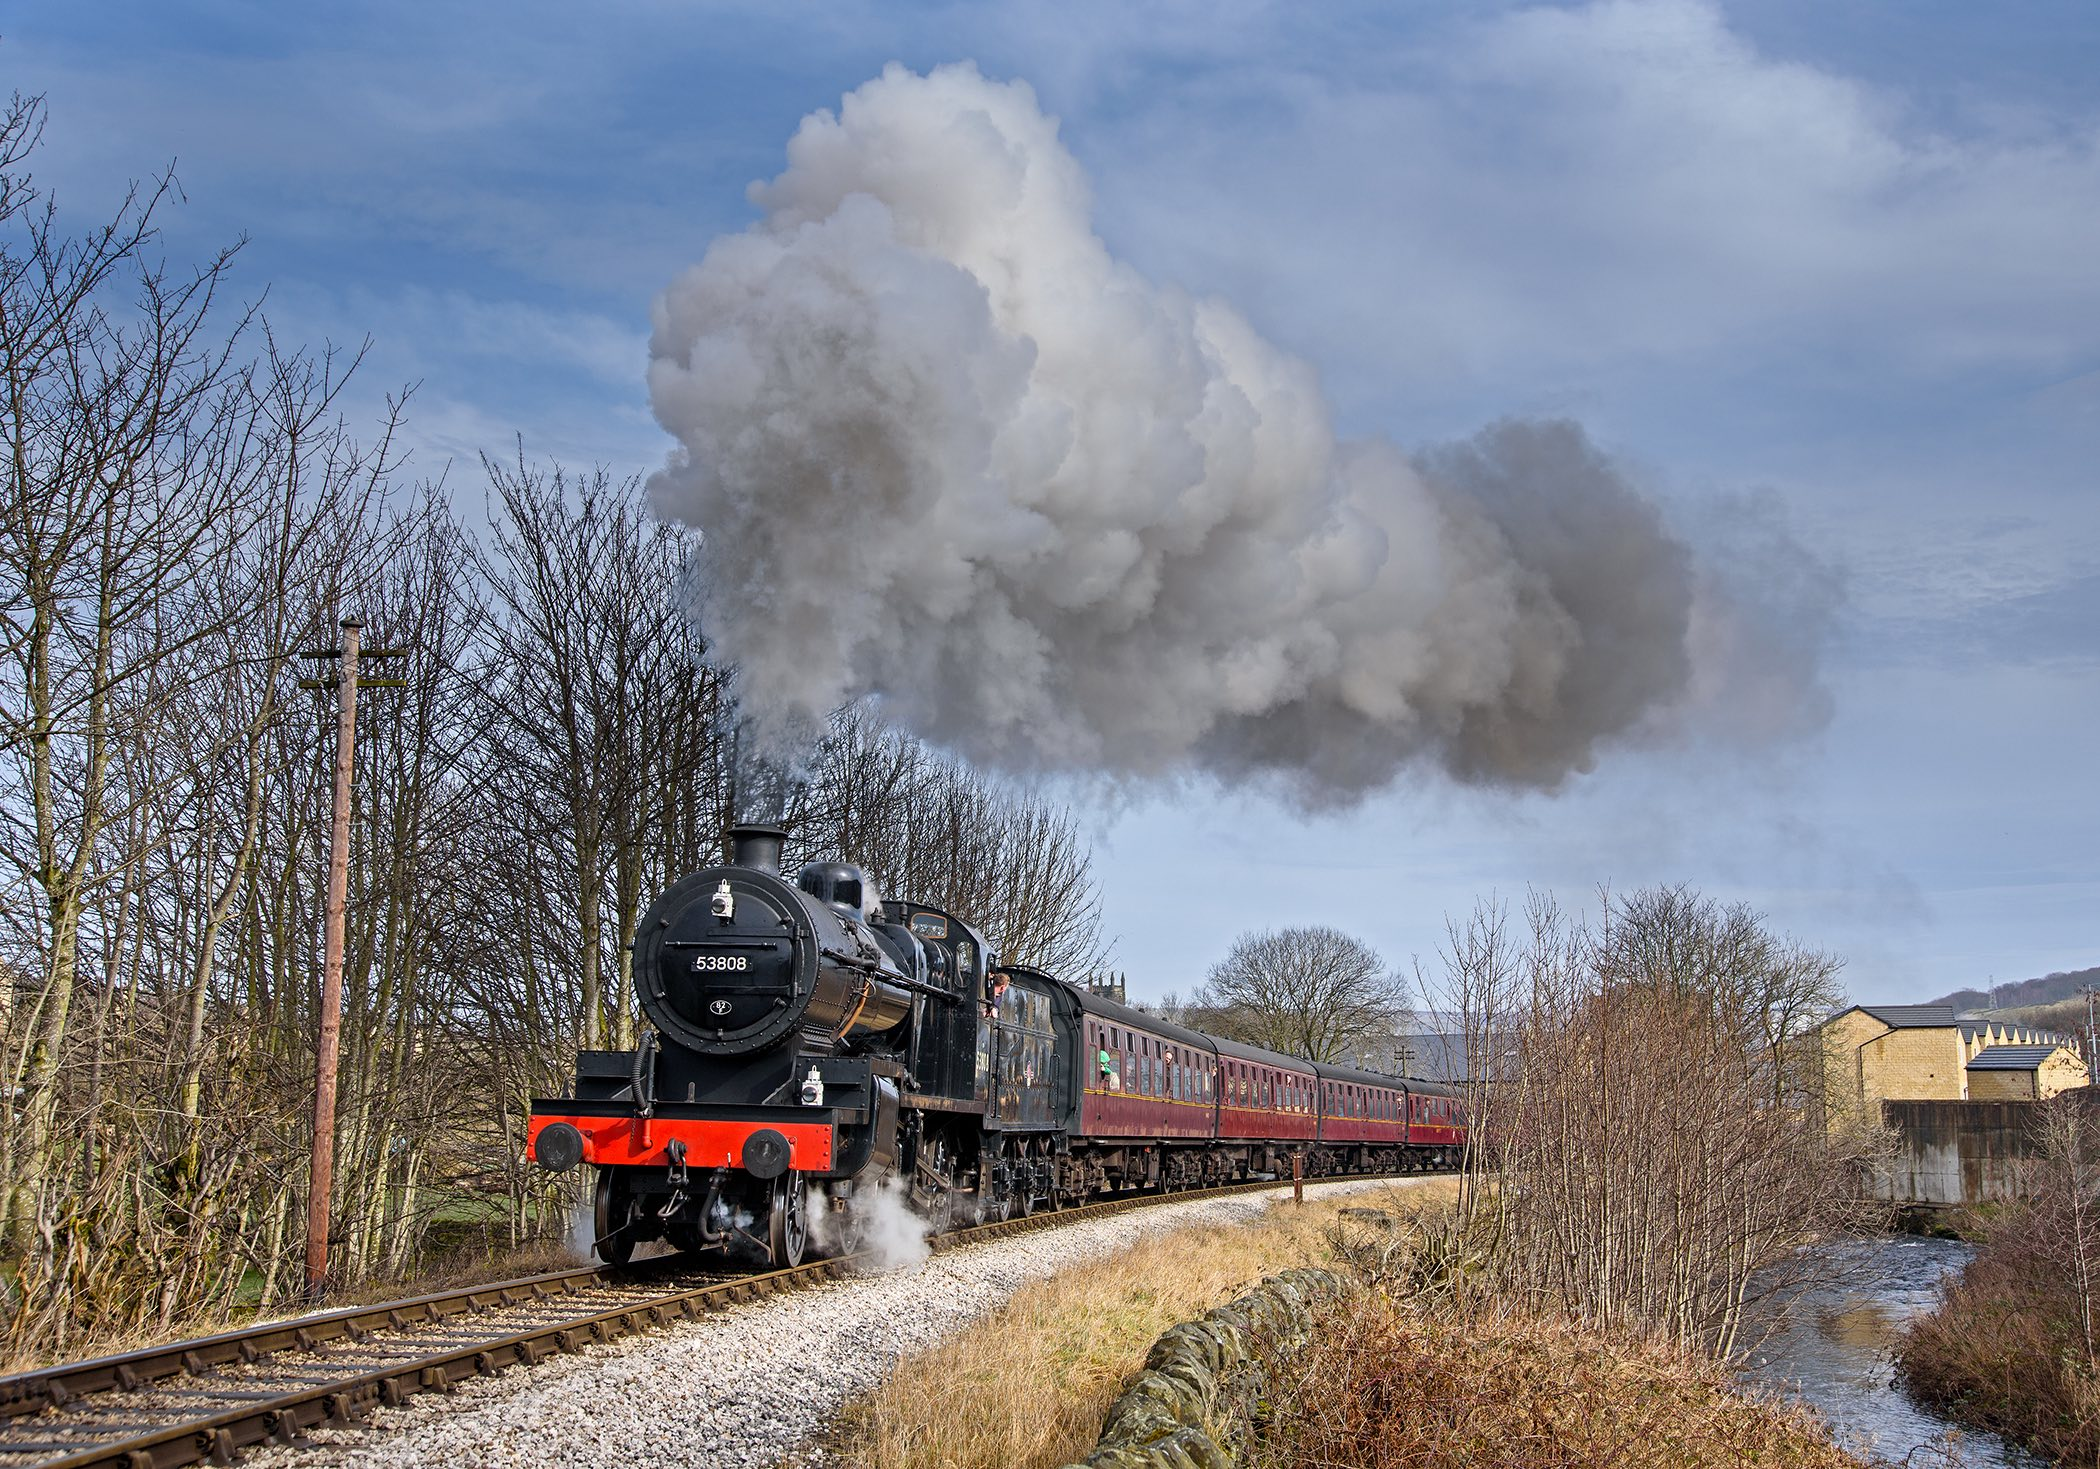 Destined for the Severn Valley Railway's 'Spring Steam Gala' on March 16-18, '7F' No. 53808 – the eleventh-hour replacement for 'B1' No. 1264 – leaves Ingrow West on March 11 at the Keighley & Worth Valley Railway's recent spring gala. KARL HEATH